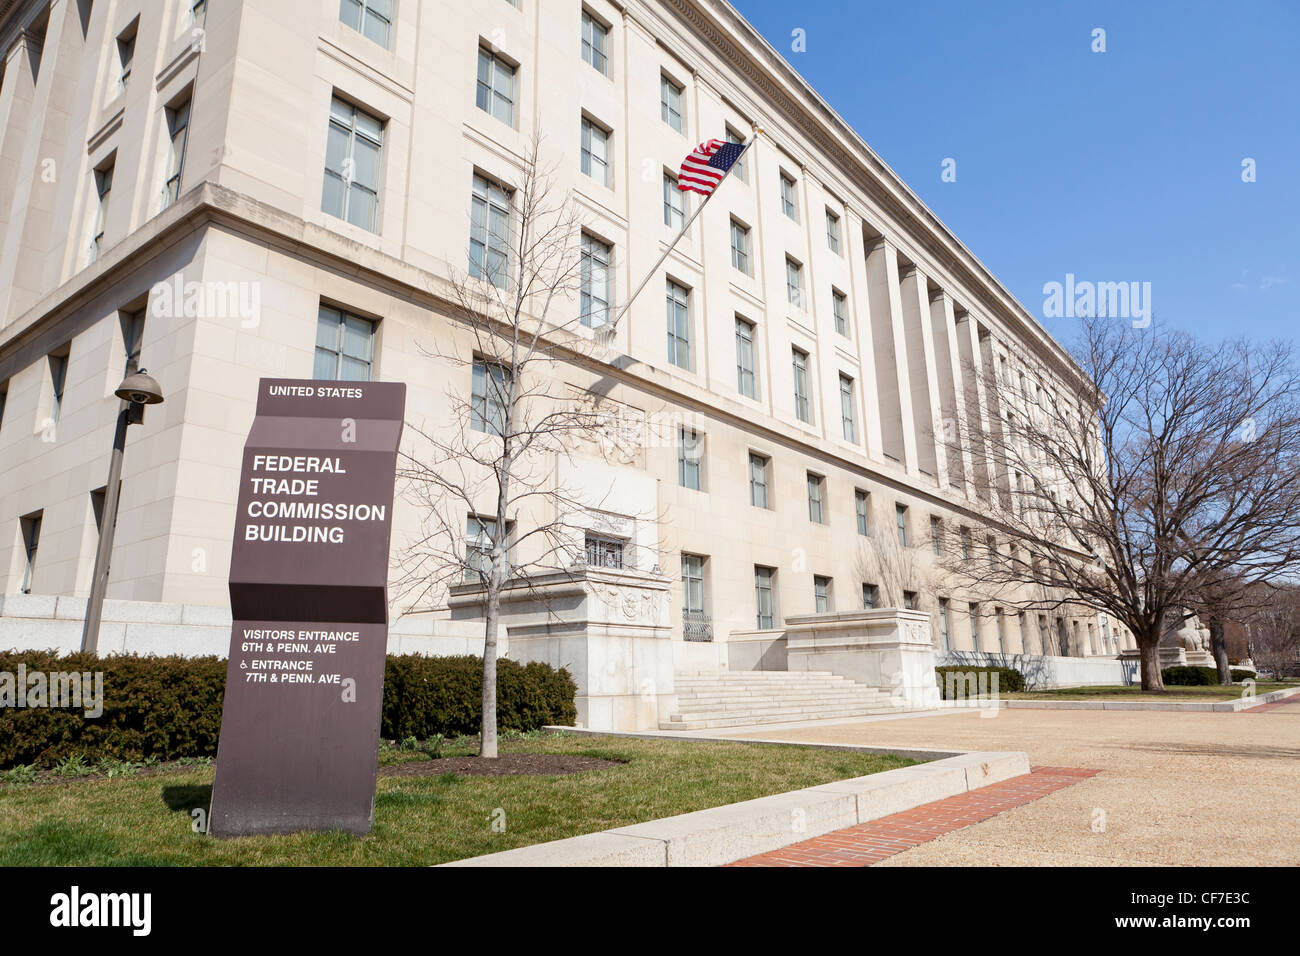 Federal Trade Commission building - Washington, DC USA - Stock Image